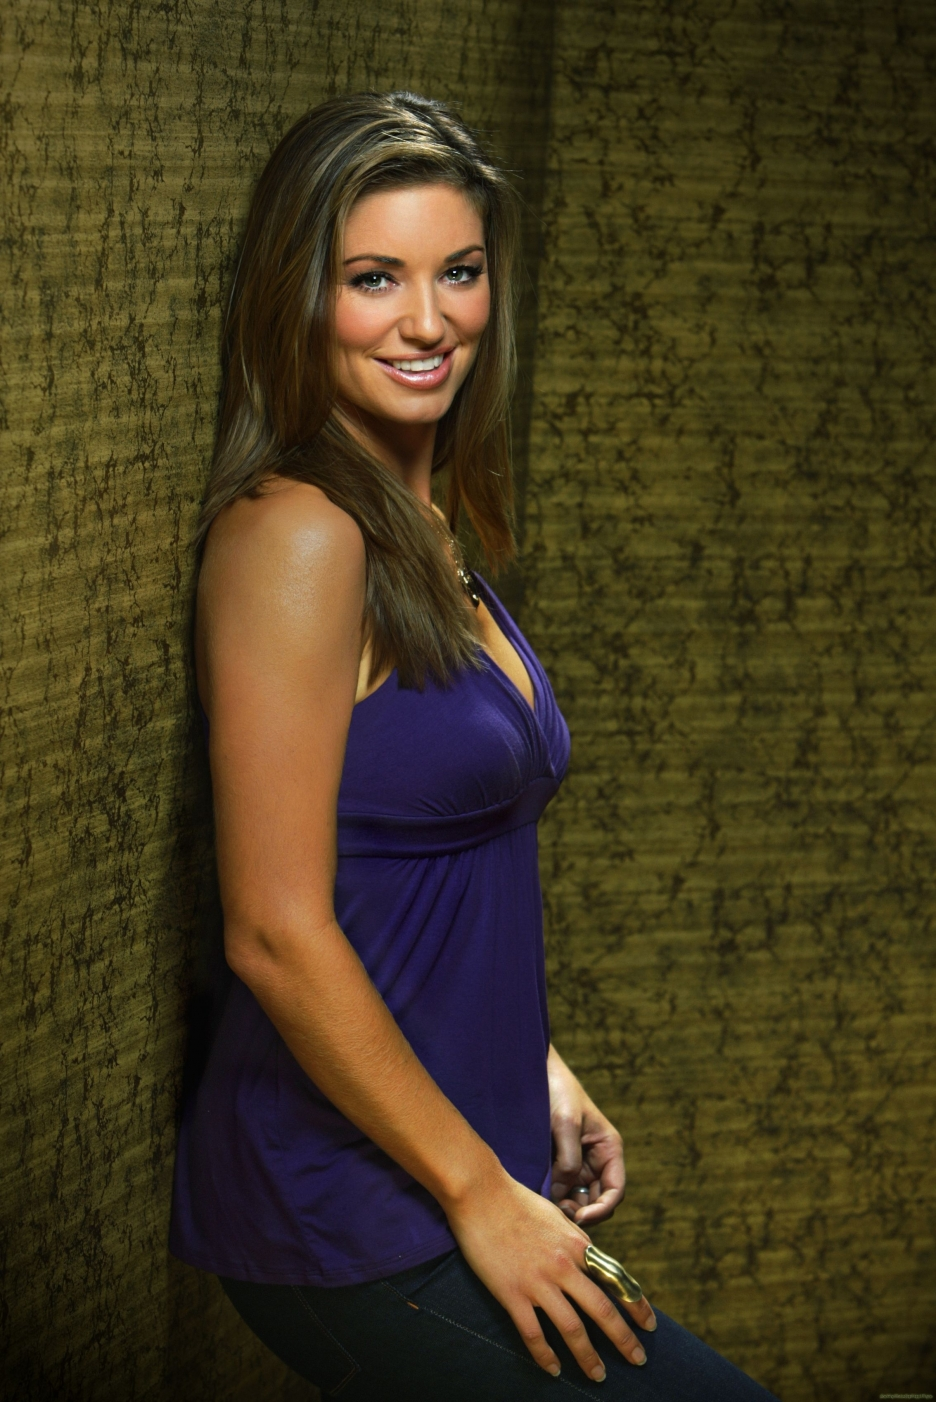 Bianca Kajlich younger photo one at Pinterest.com